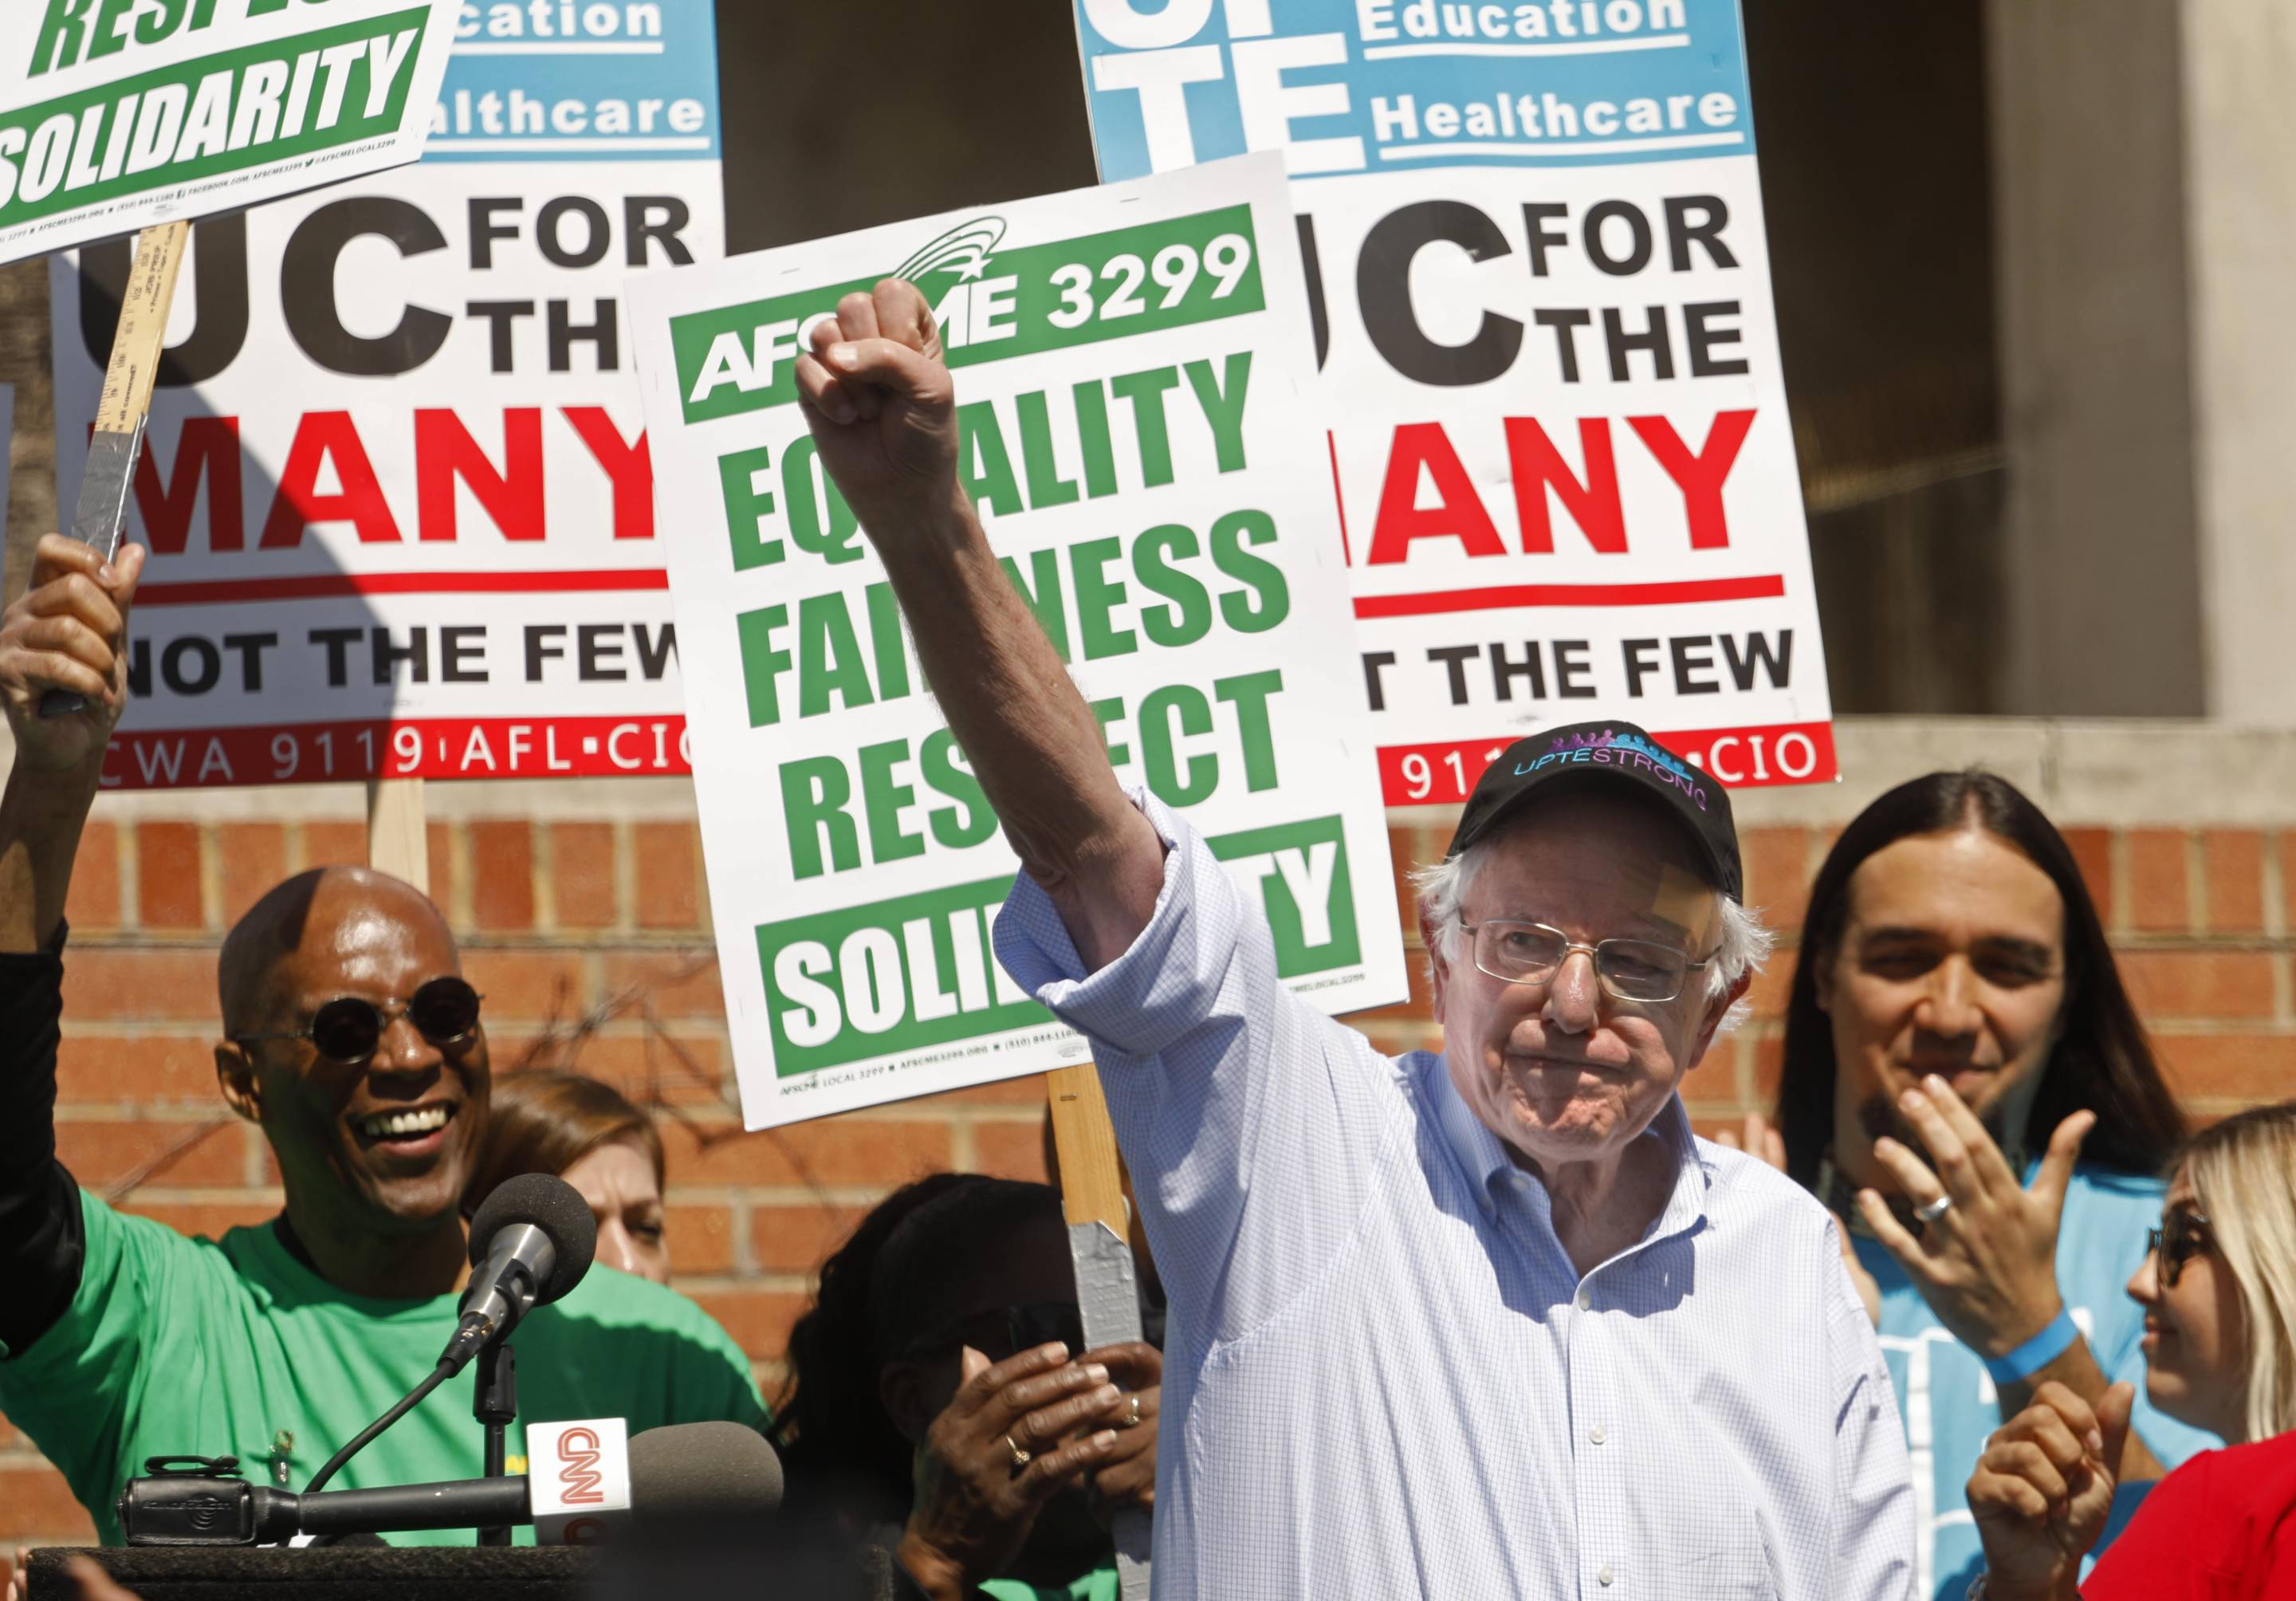 Democratic Presidential Candidate Bernie Sanders Attends Communication Workers Union Rally At UCLA